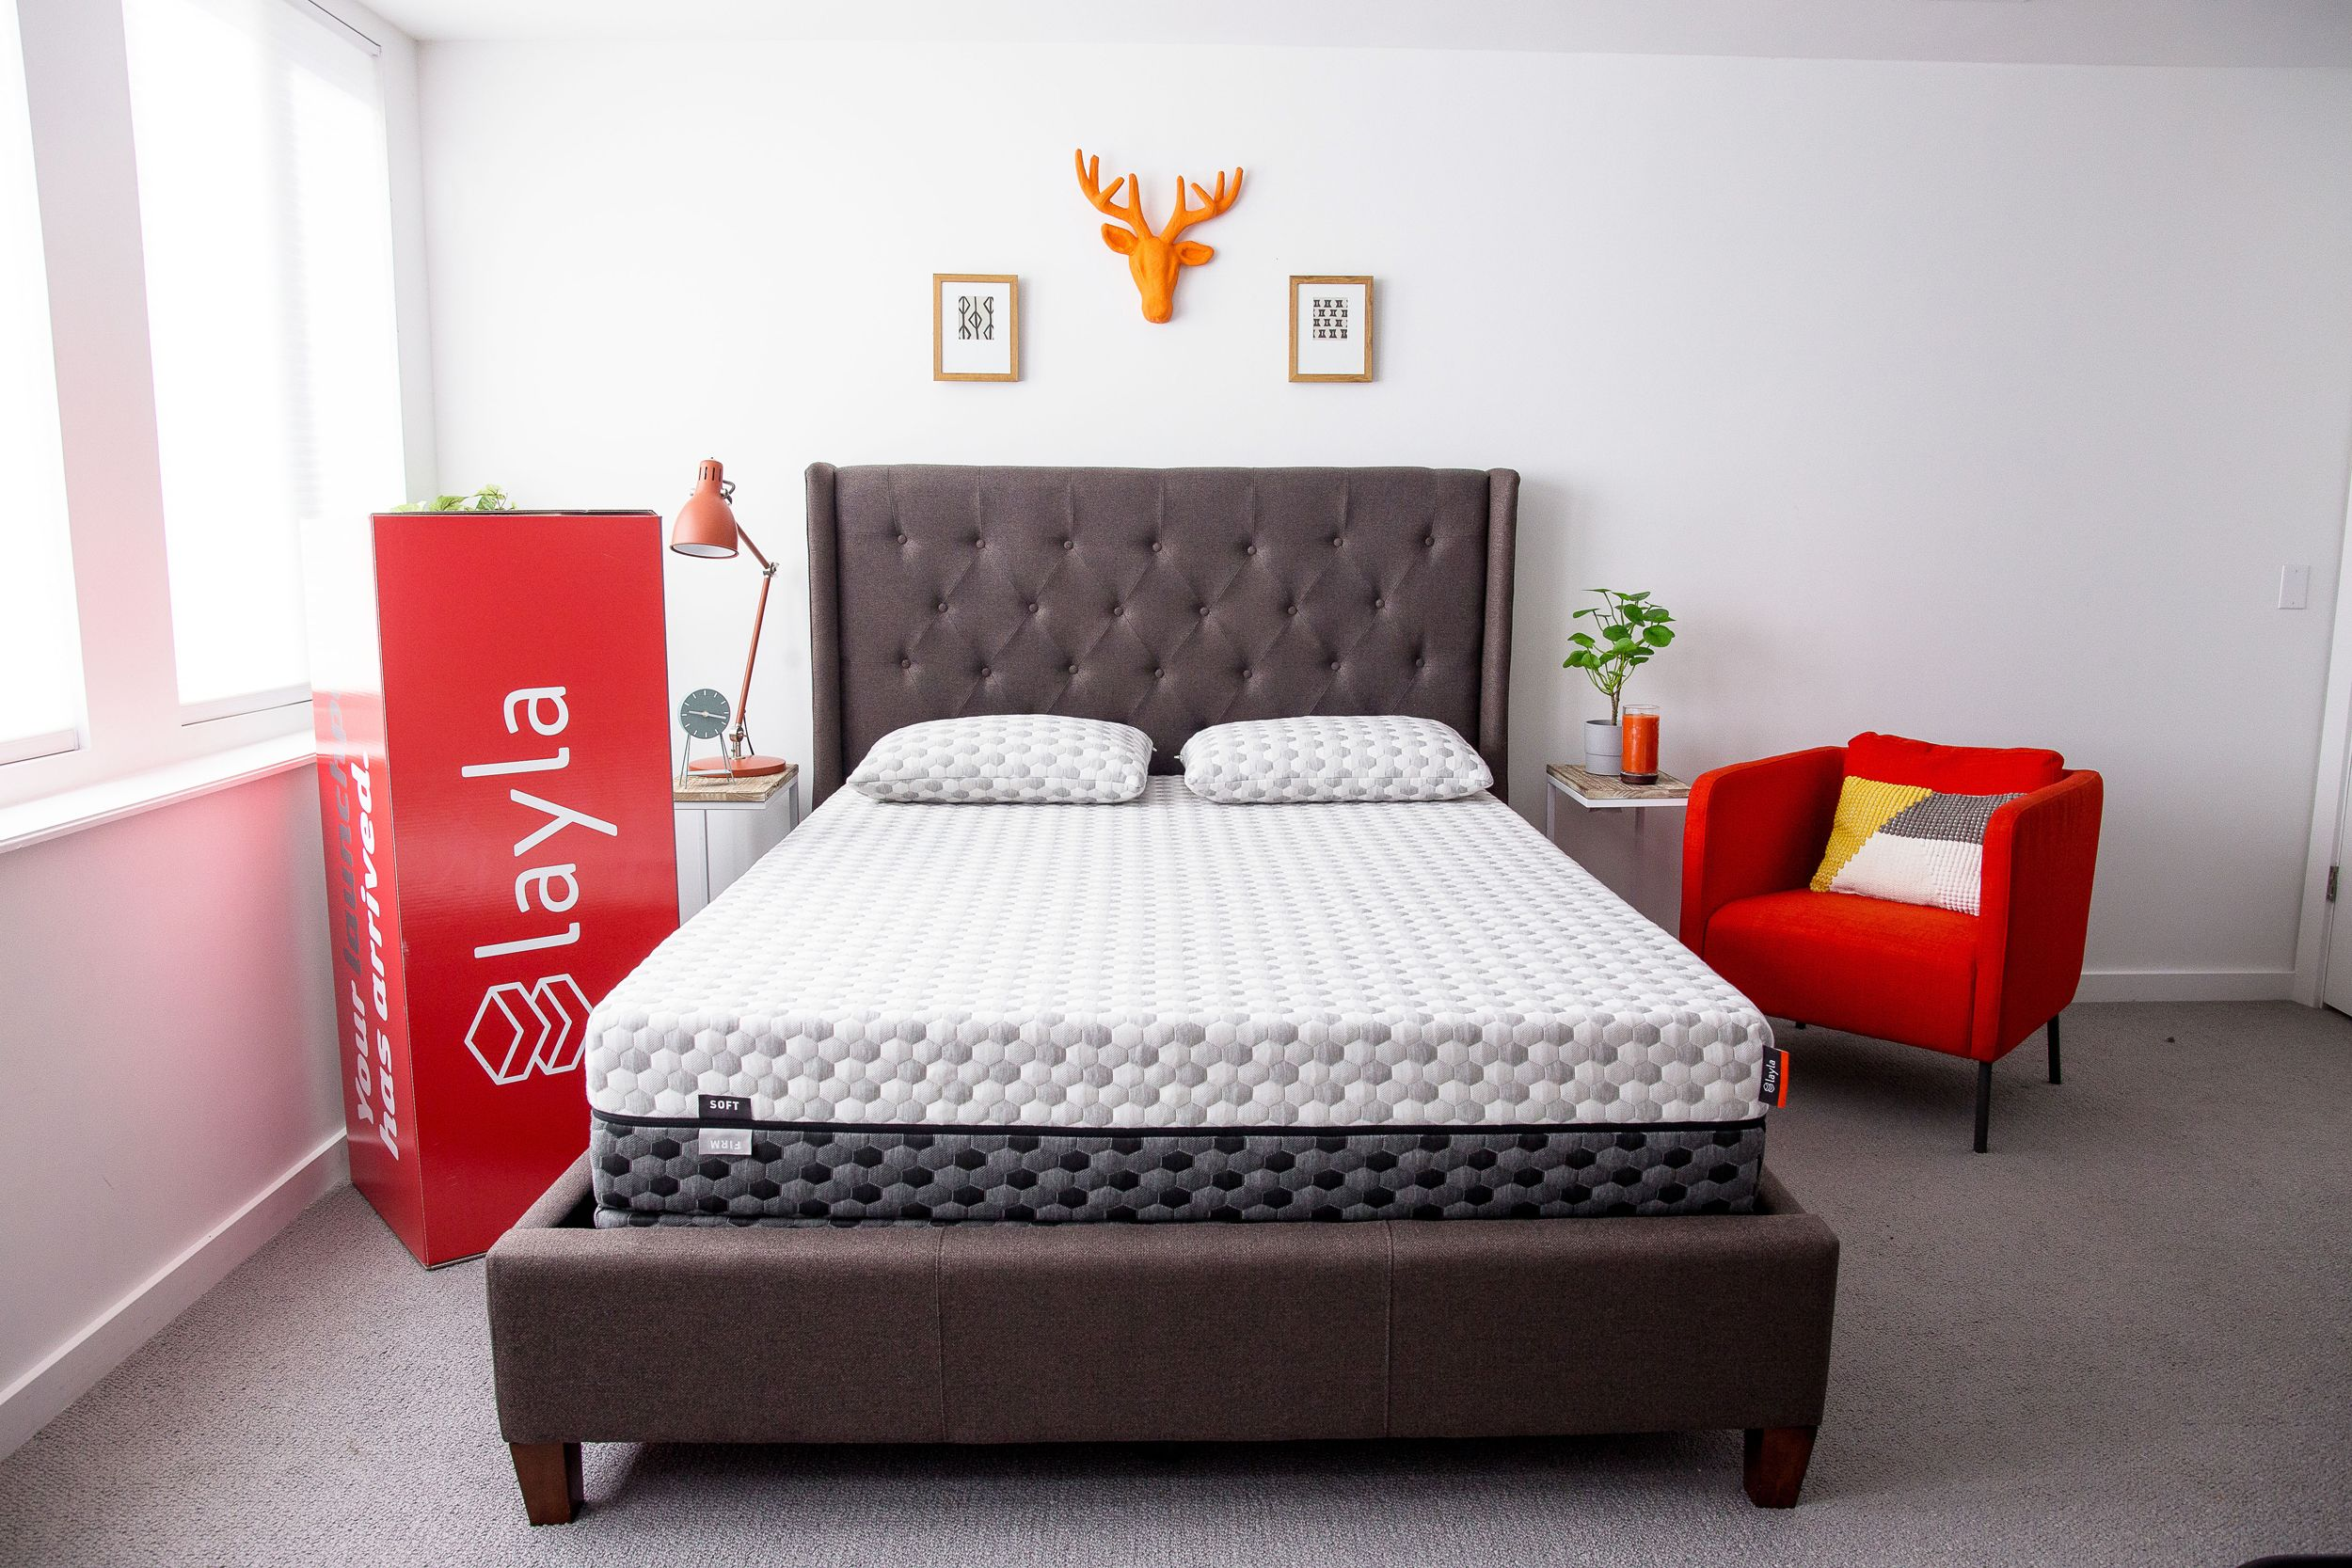 Ratings On Mattresses >> Best Overall Mattresses Of 2019 The Sleep Judge